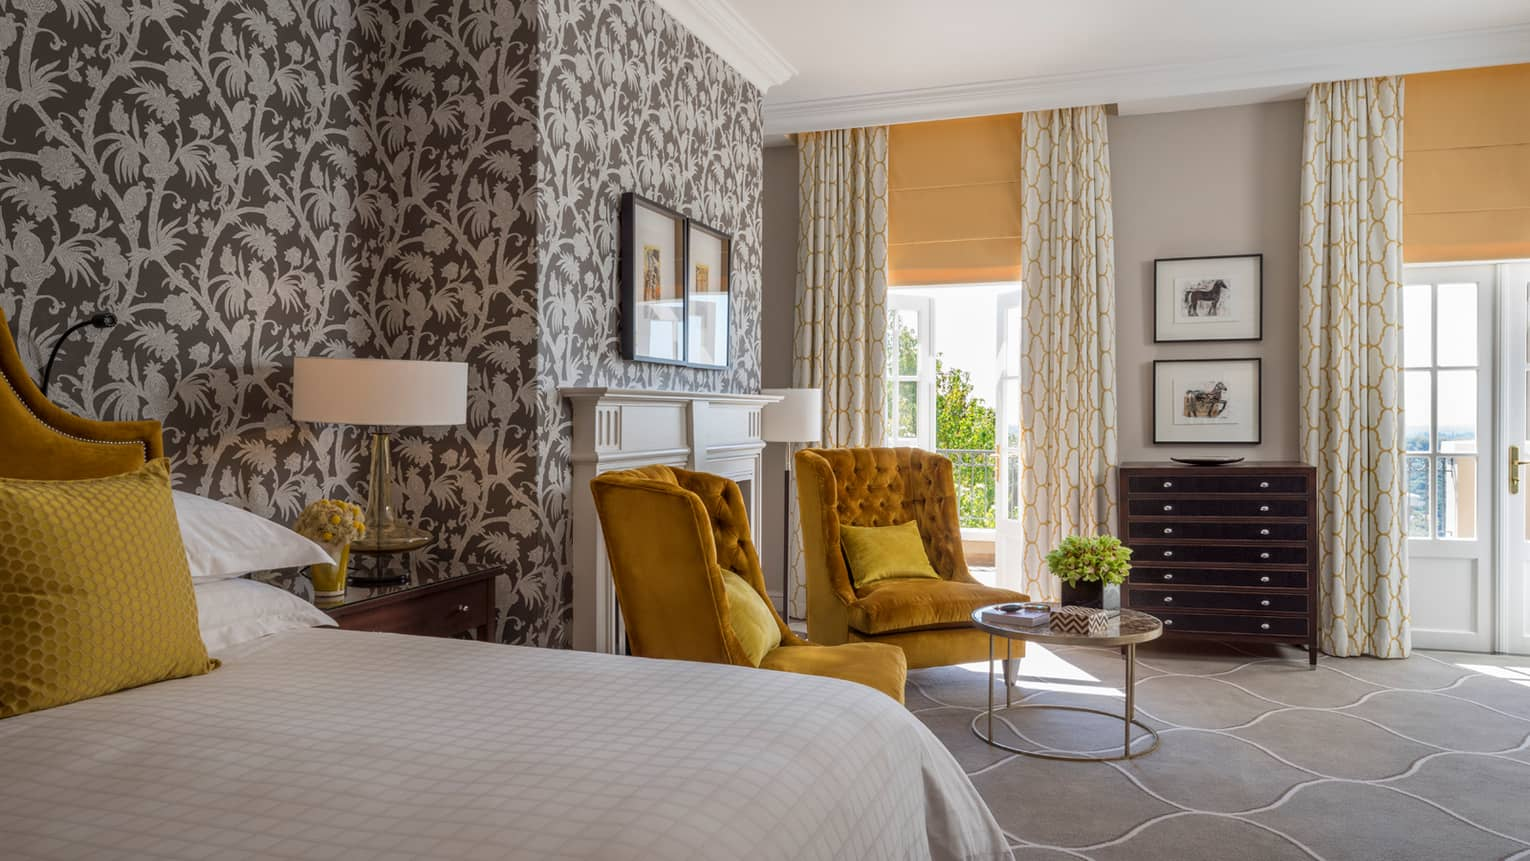 Royal Suite bed, two gold tufted armchairs around small glass table, tropical wallpaper